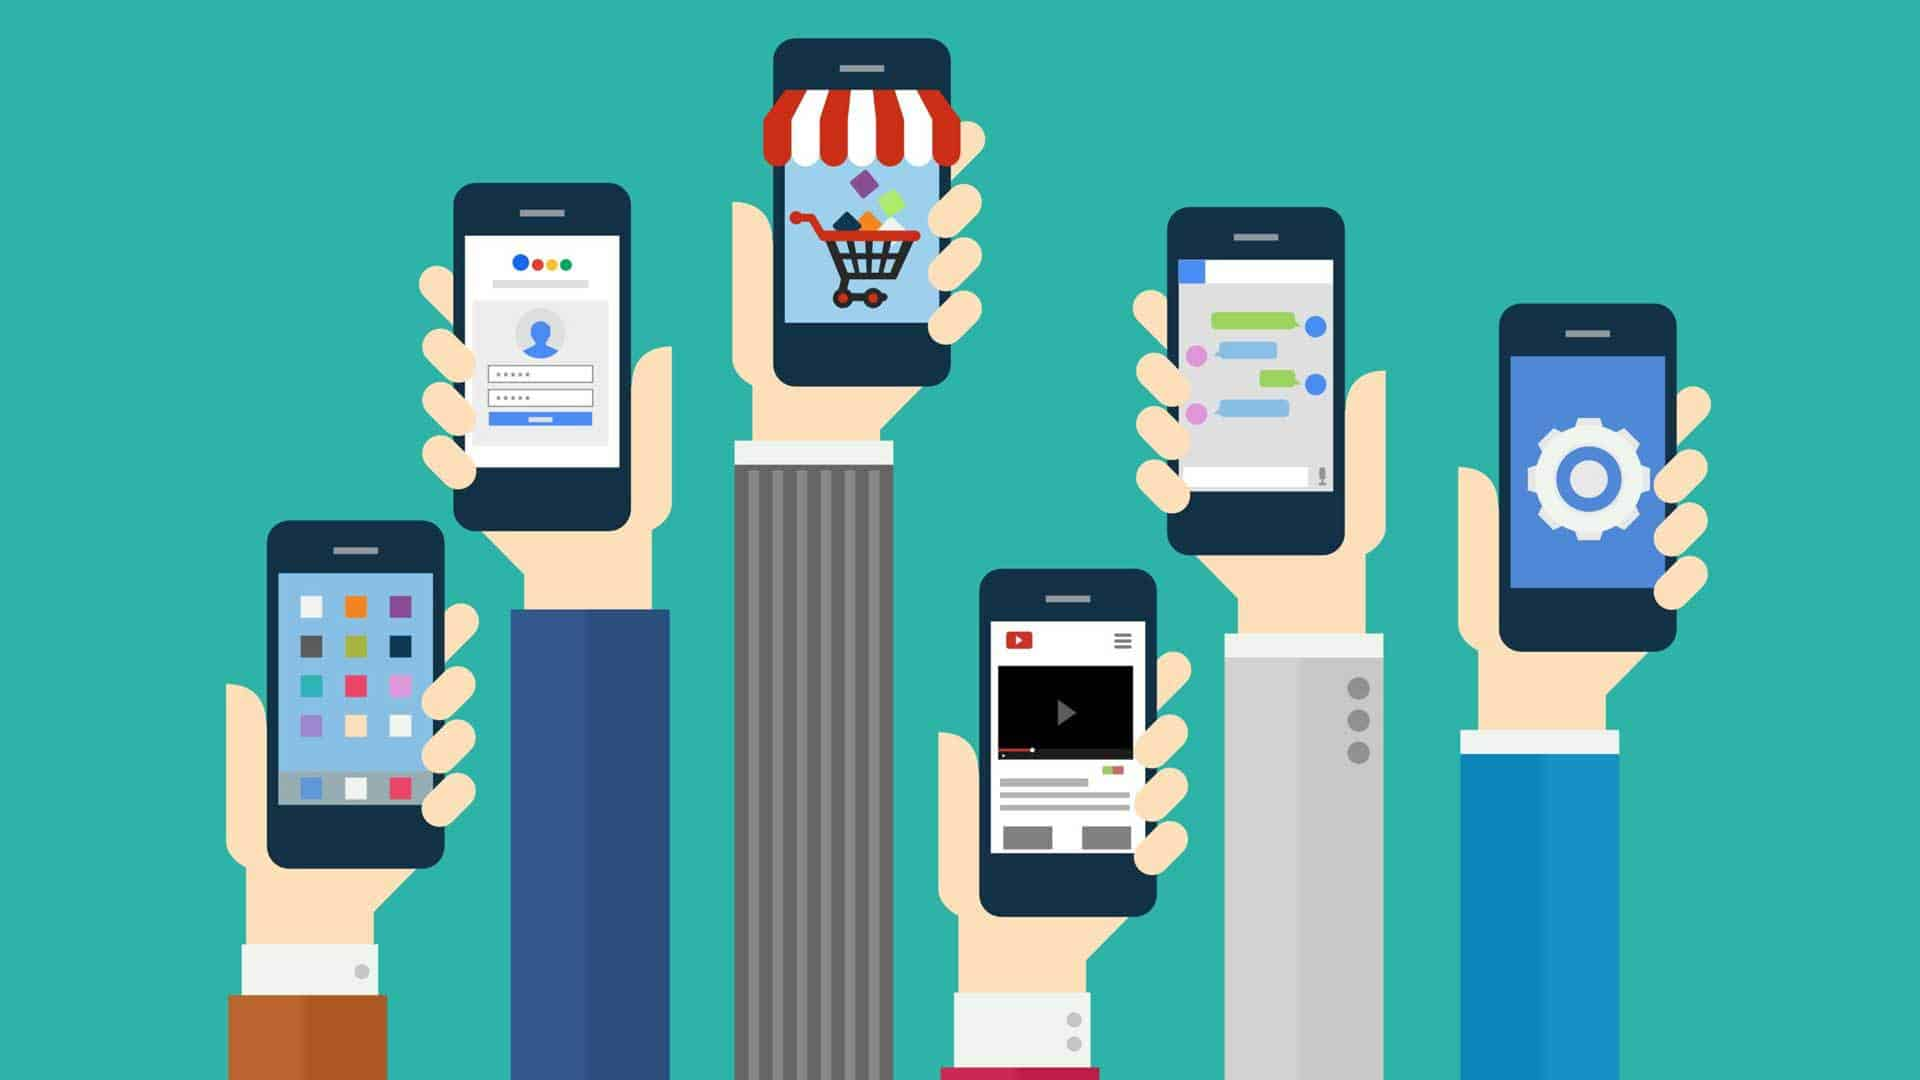 Animated hands holding smartphones. Mobile trends